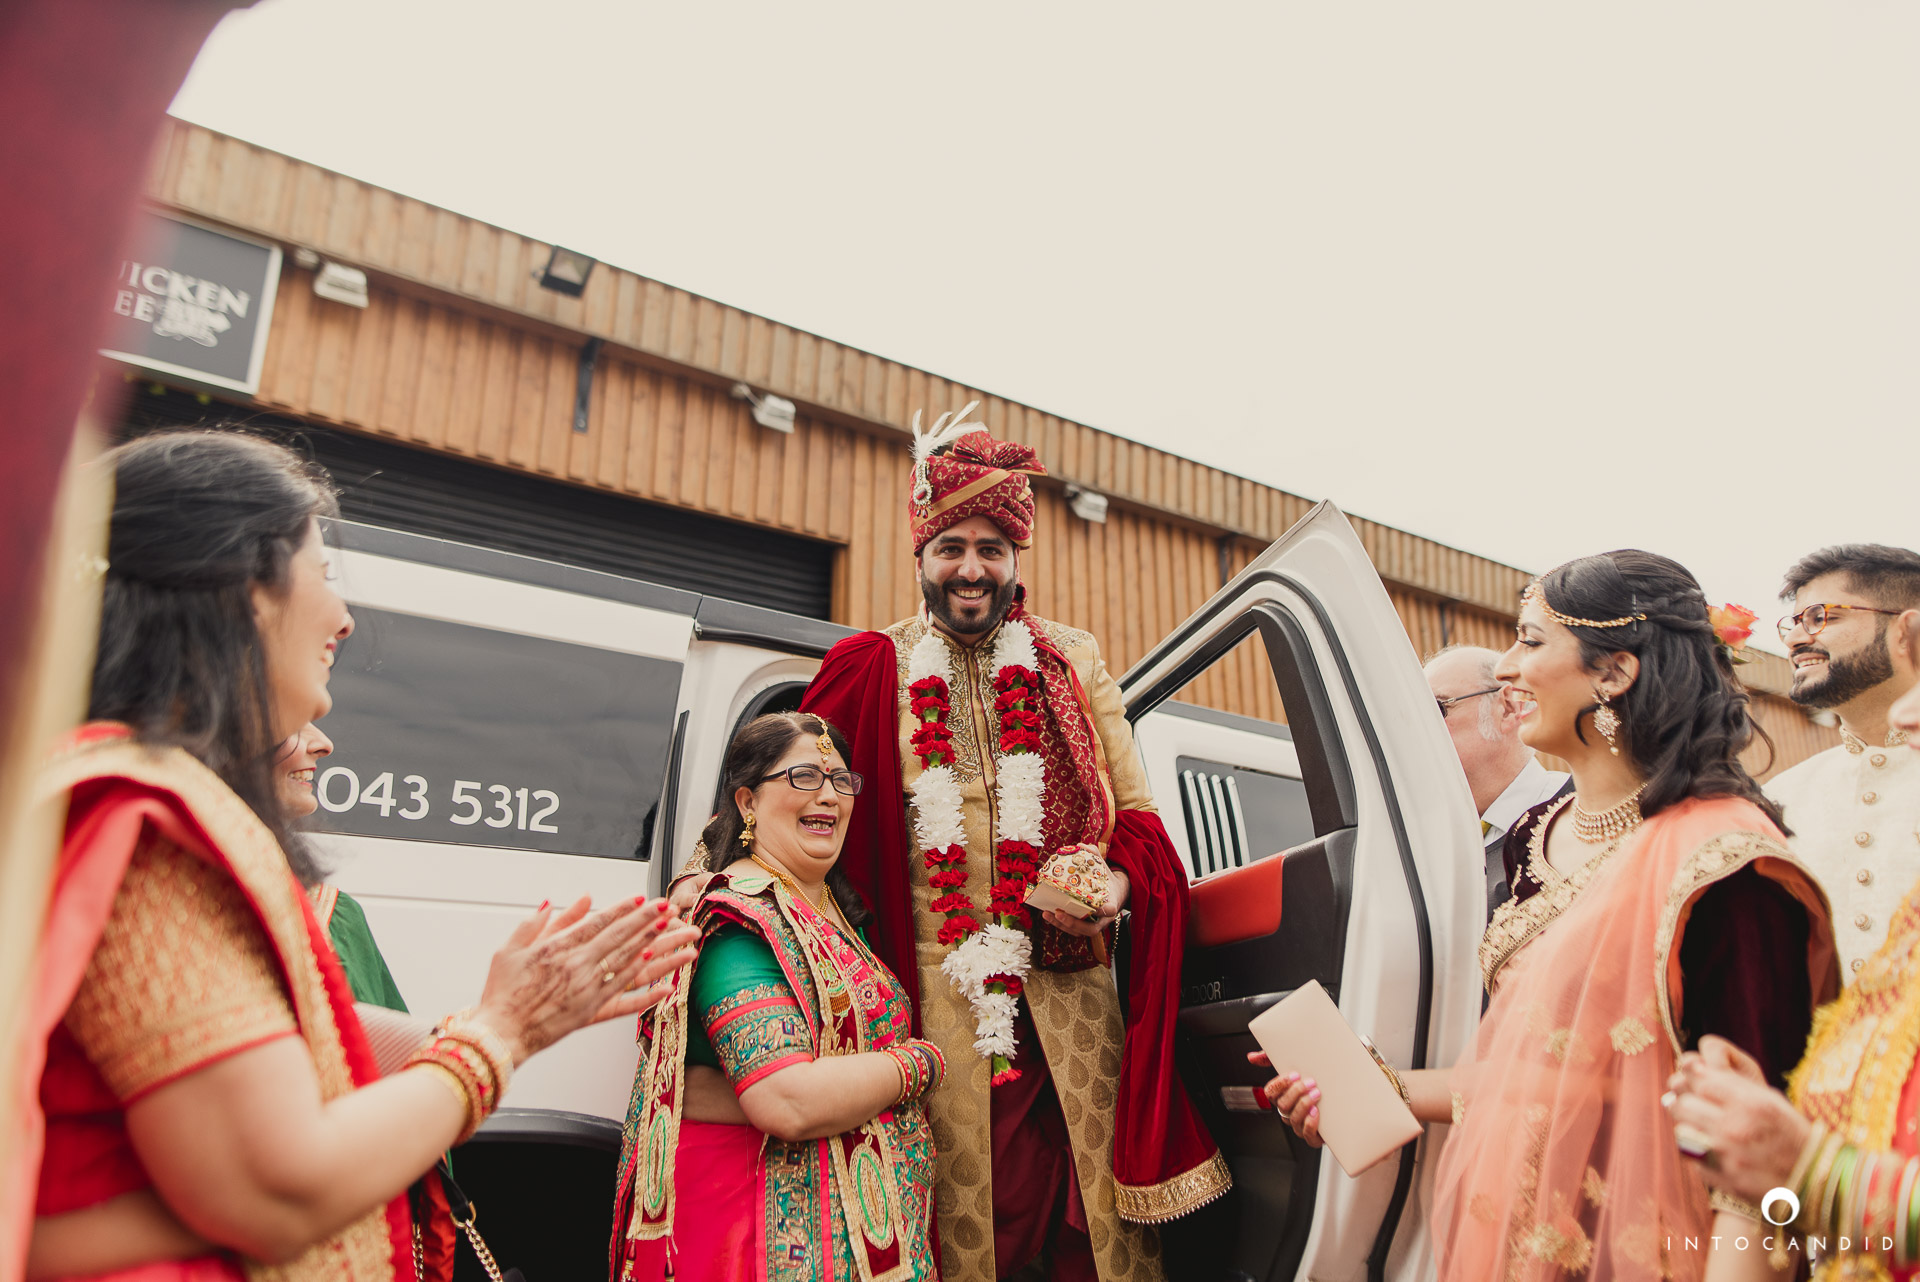 London_Wedding_Photographer_Intocandid_Photography_Ketan & Manasvi_19.JPG